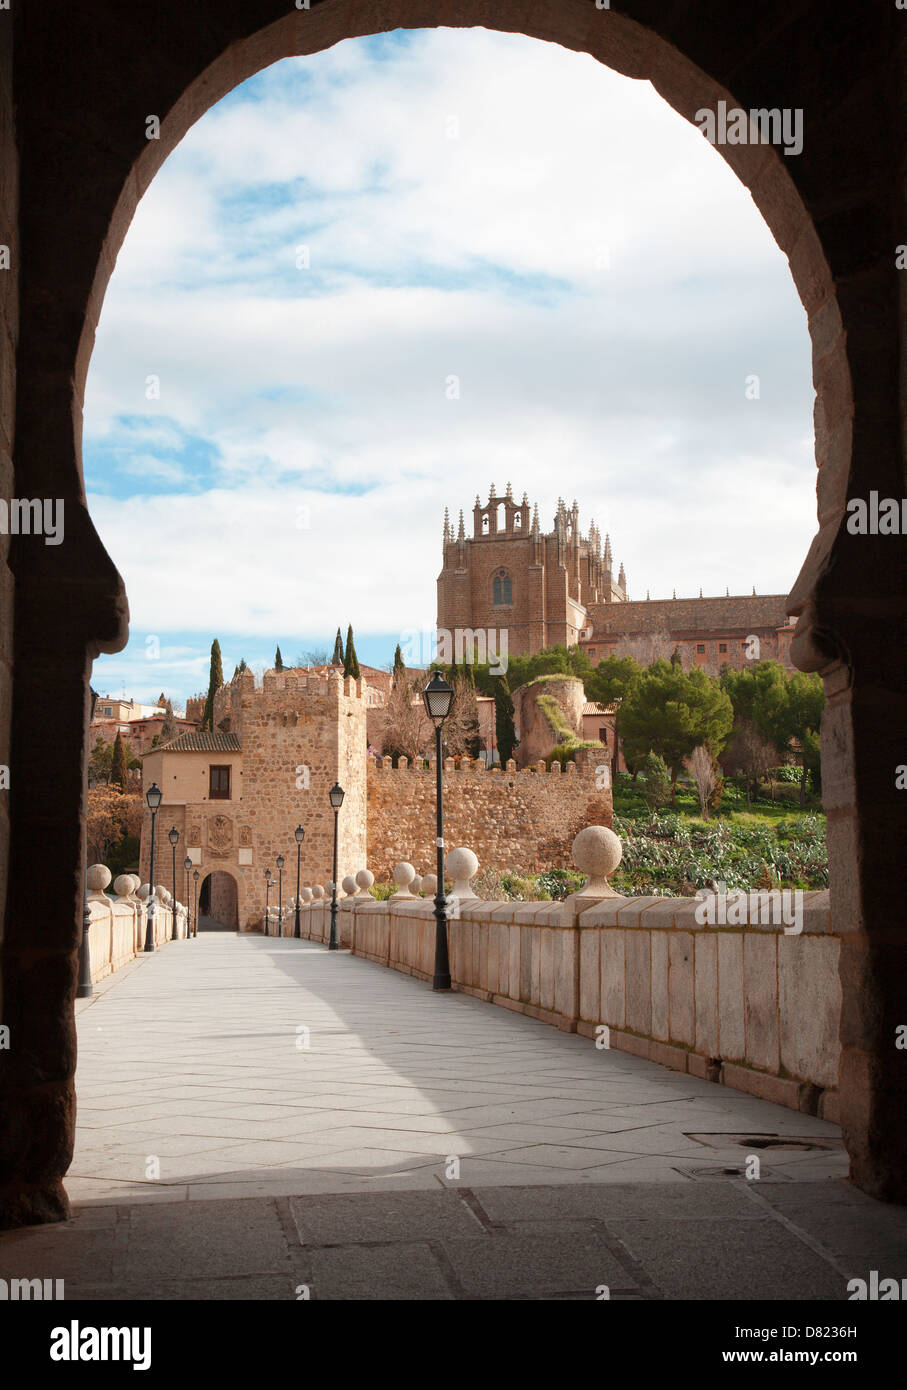 Toledo - Outlook form San Martin s bride or Puente de san Martin to Monastery of saint John of the King in morning - Stock Image